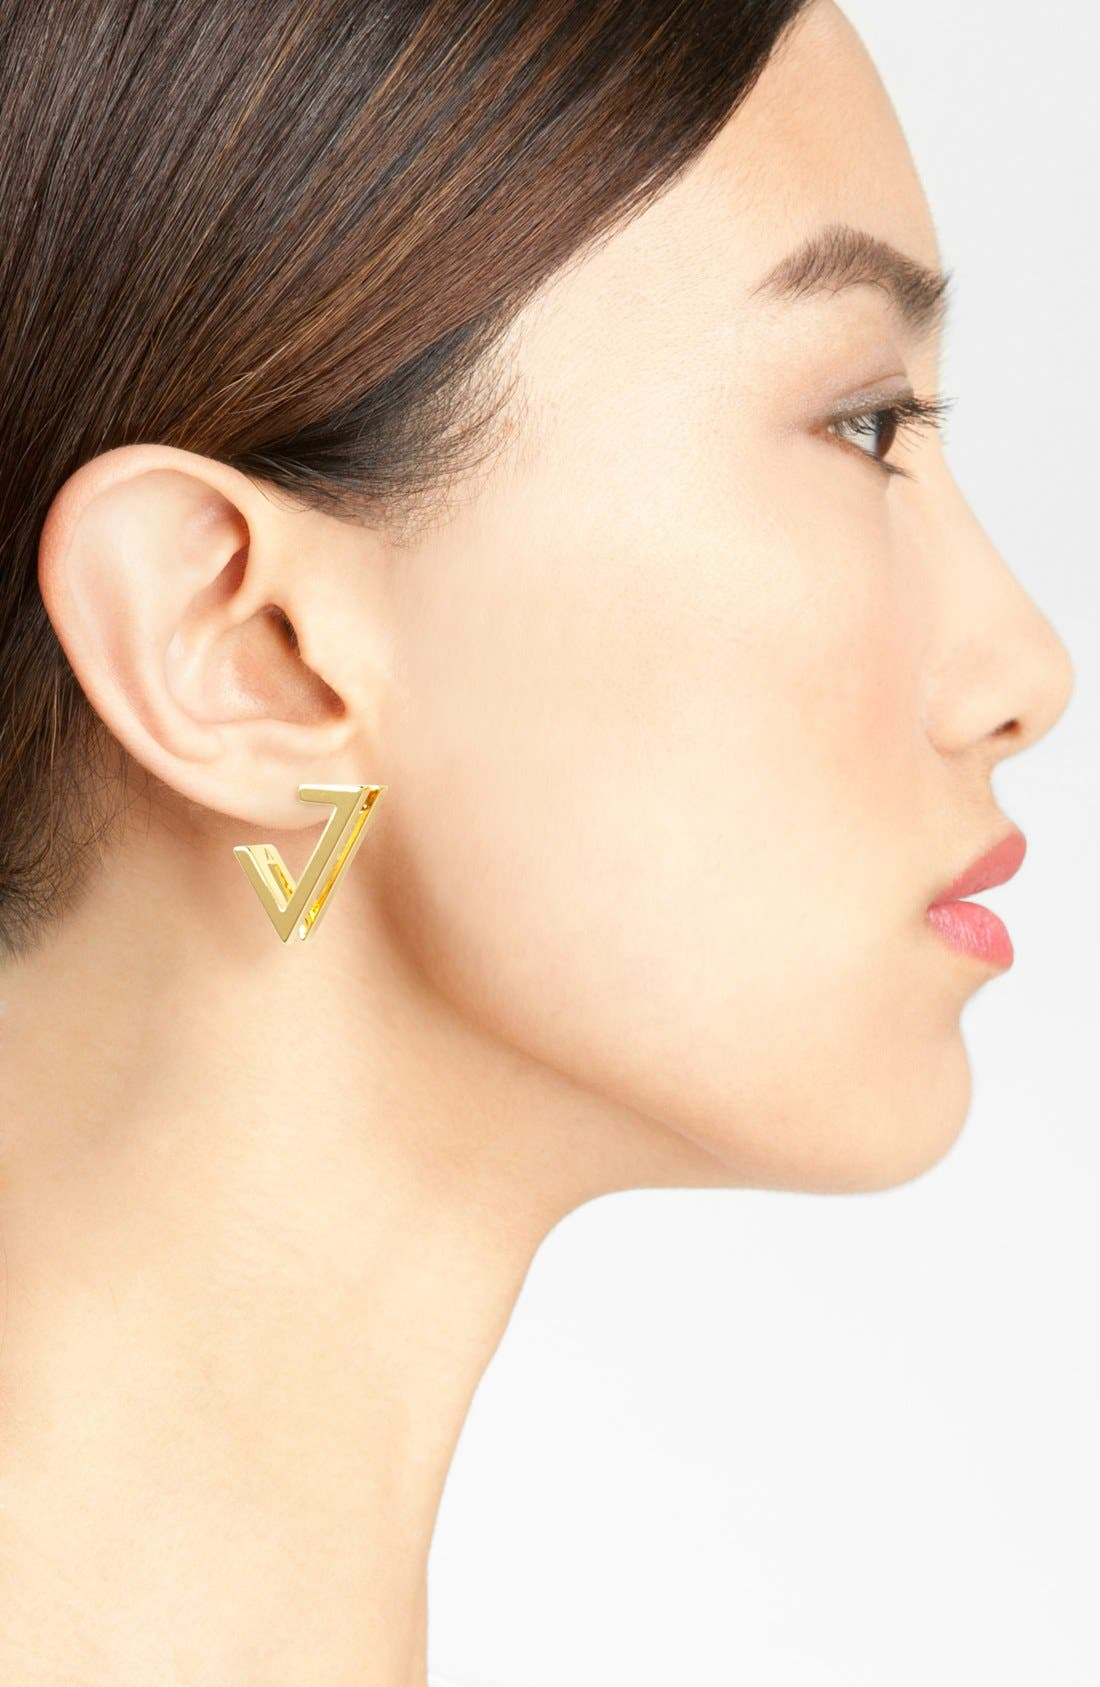 Alternate Image 2  - Vince Camuto 'Very Vince' Double V Hoop Earrings